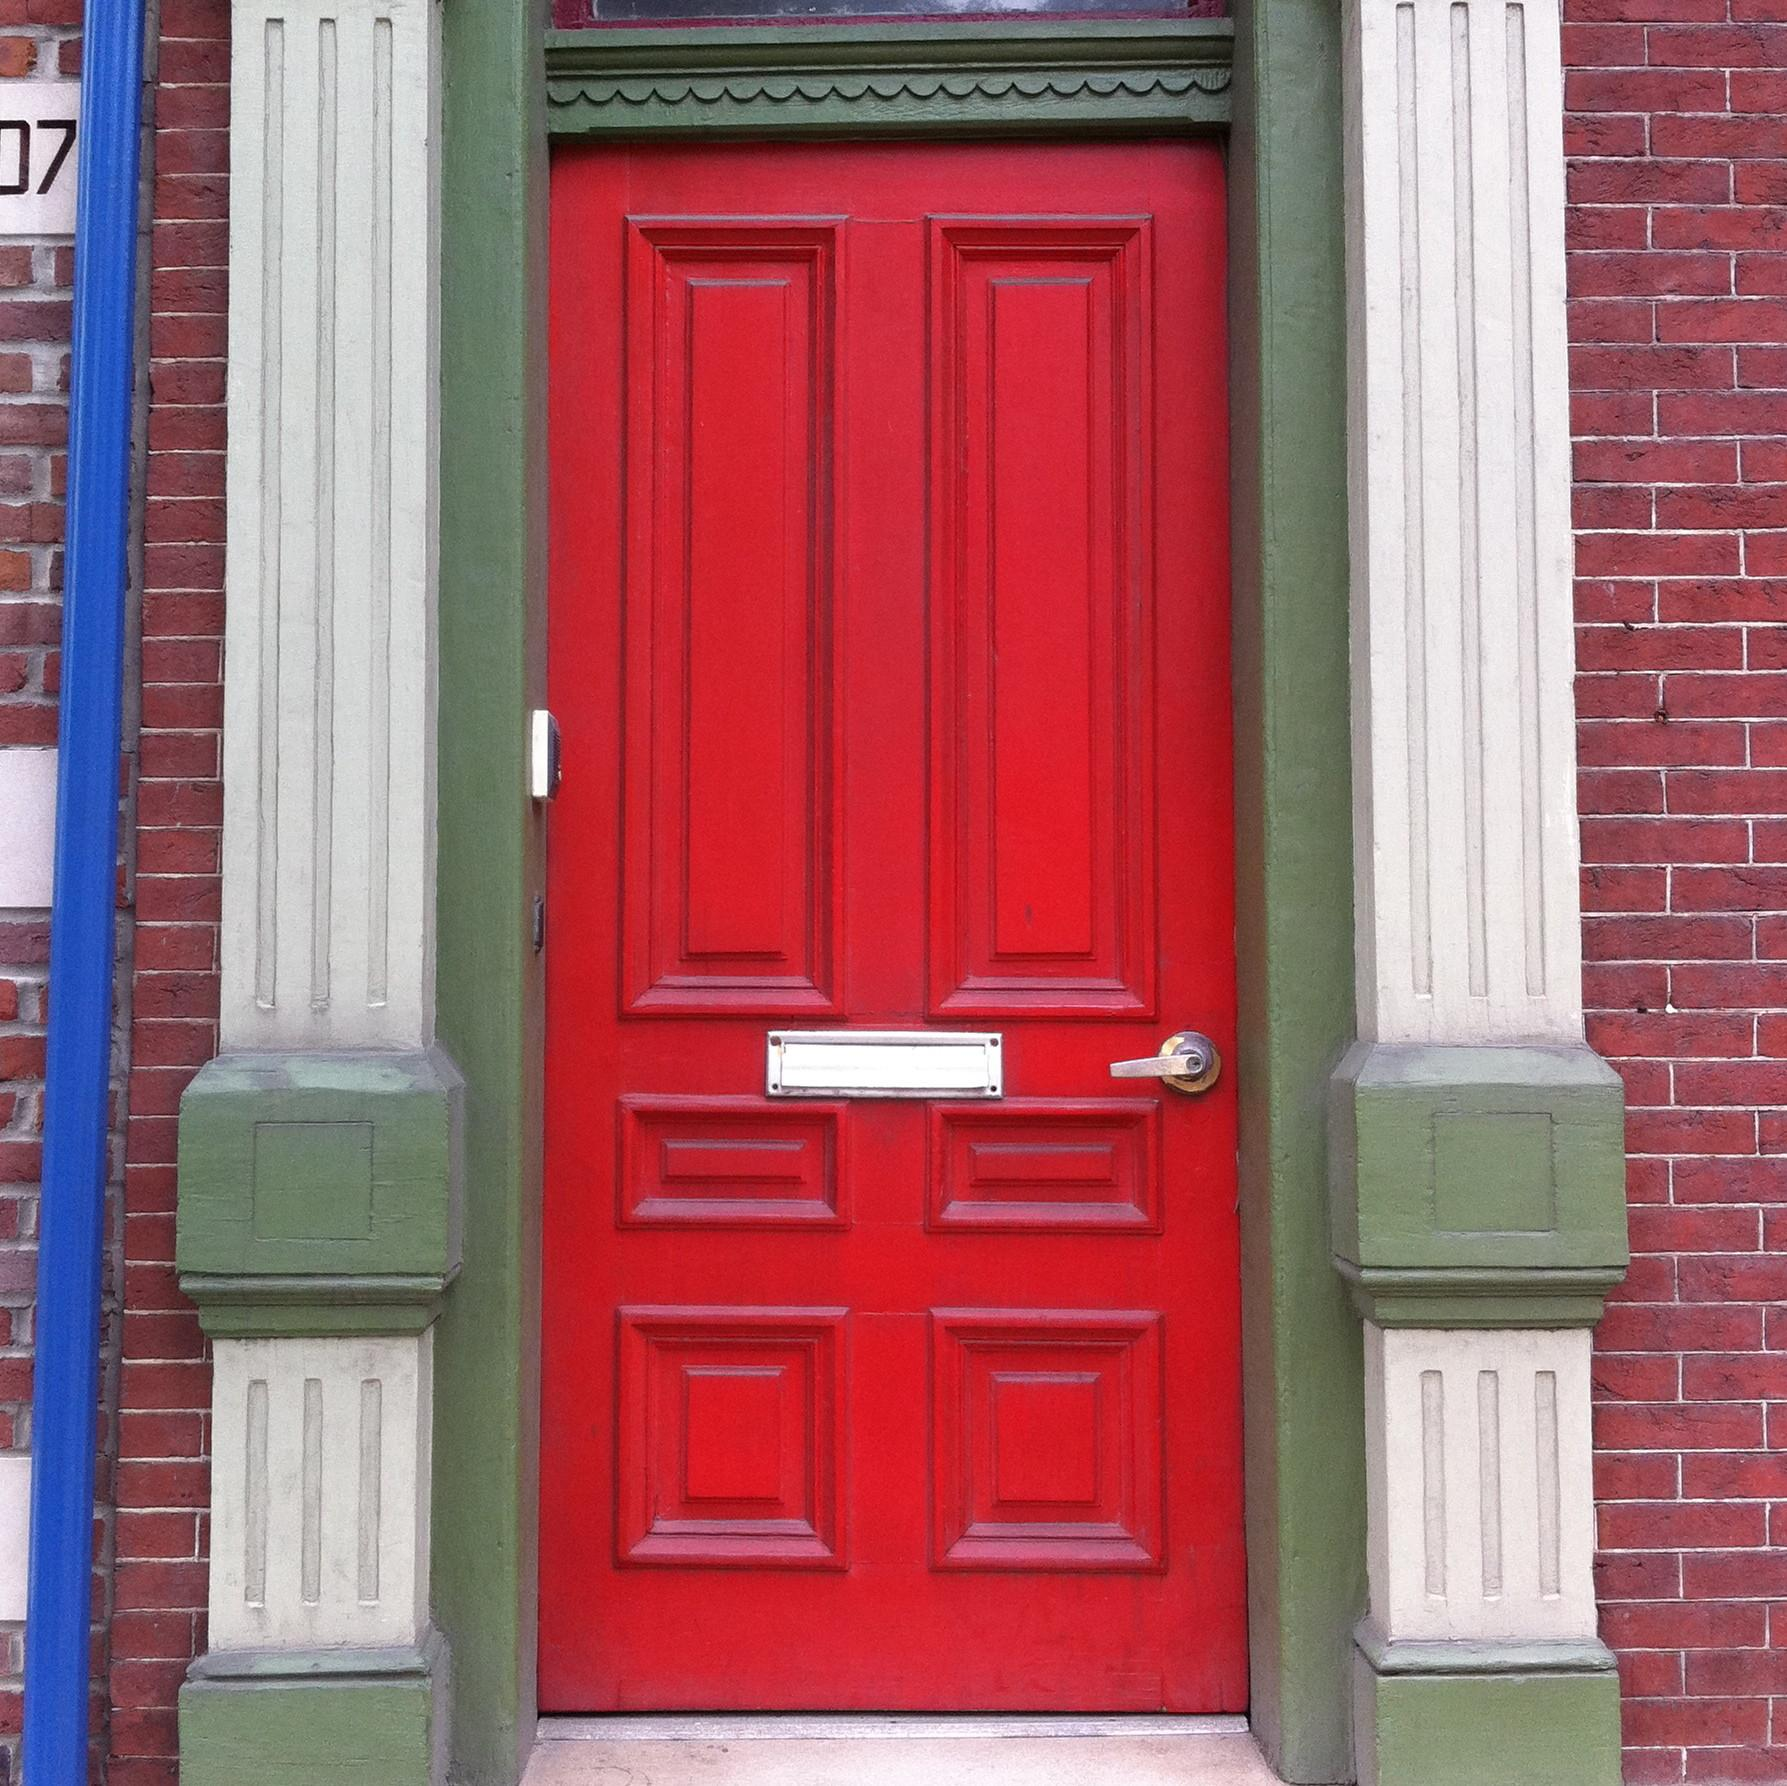 Red Doors Lawrenceville House Ongoing History